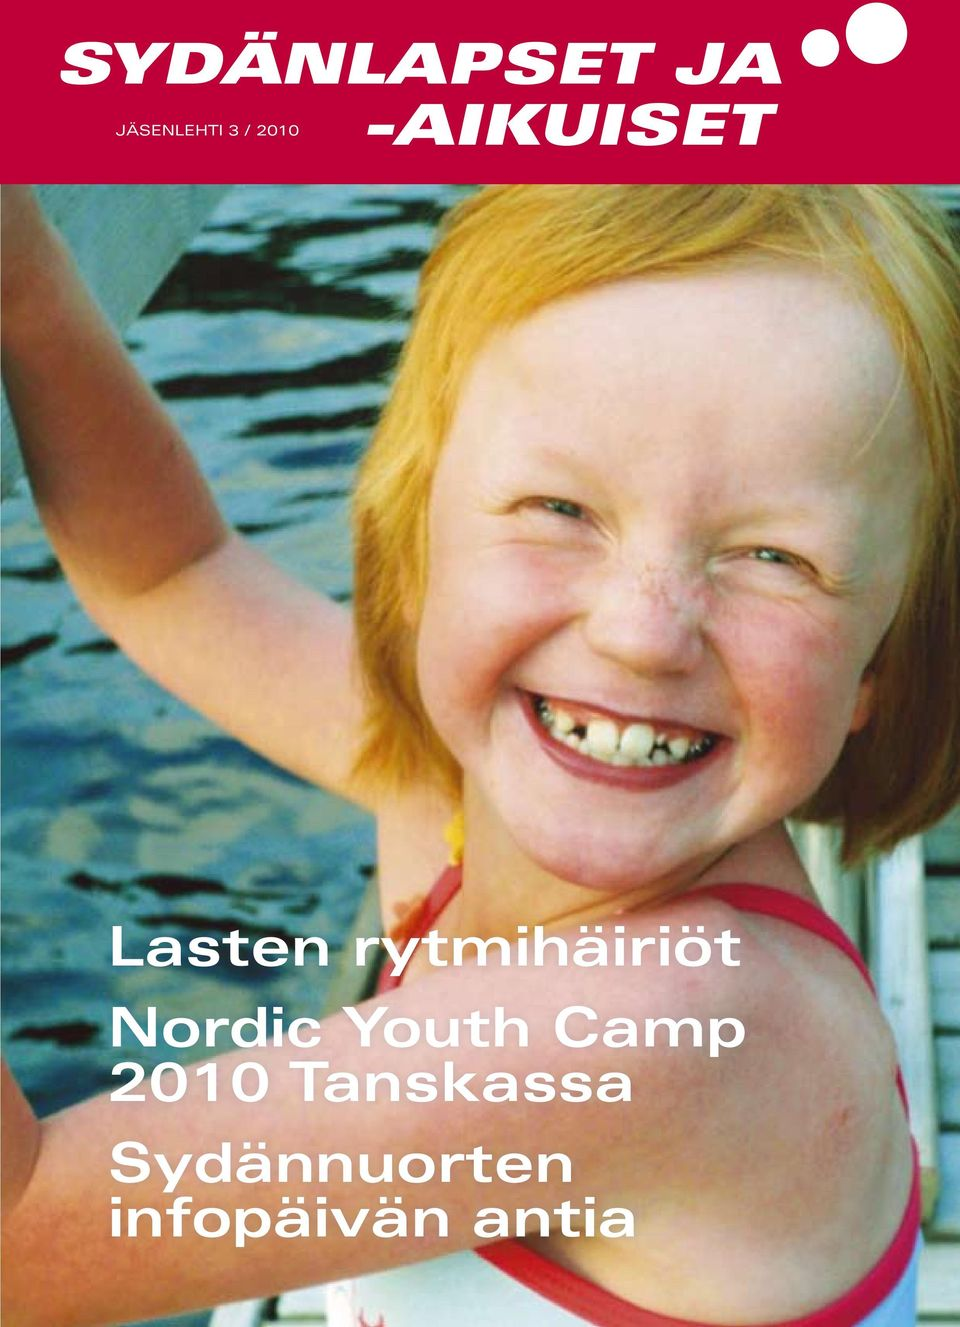 rytmihäiriöt Nordic Youth Camp